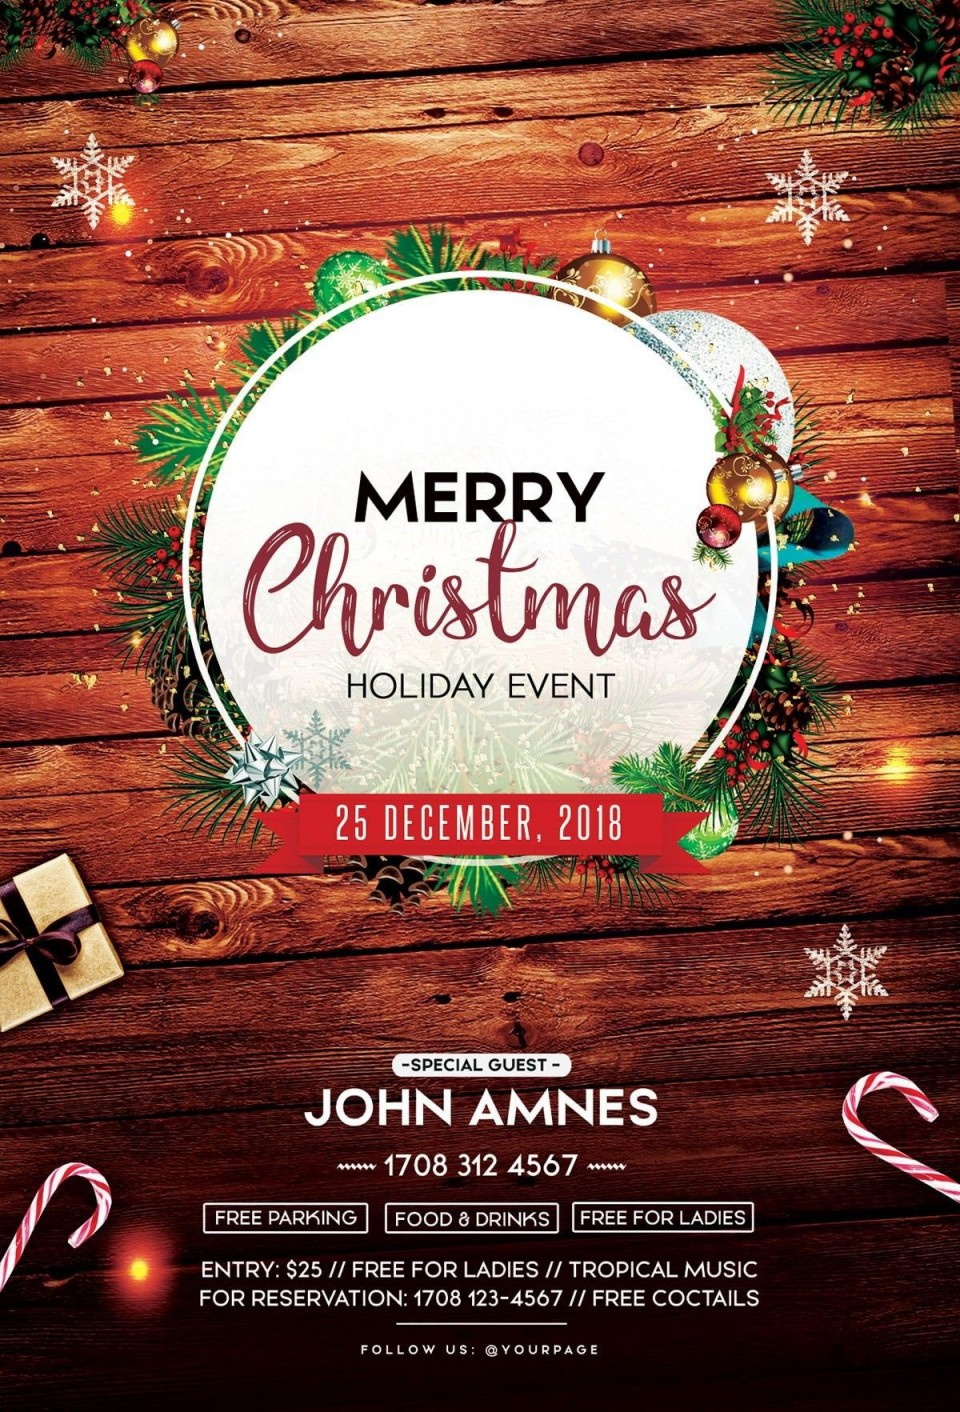 002 Remarkable Free Christma Poster Template High Resolution  Uk Party Download Fair960